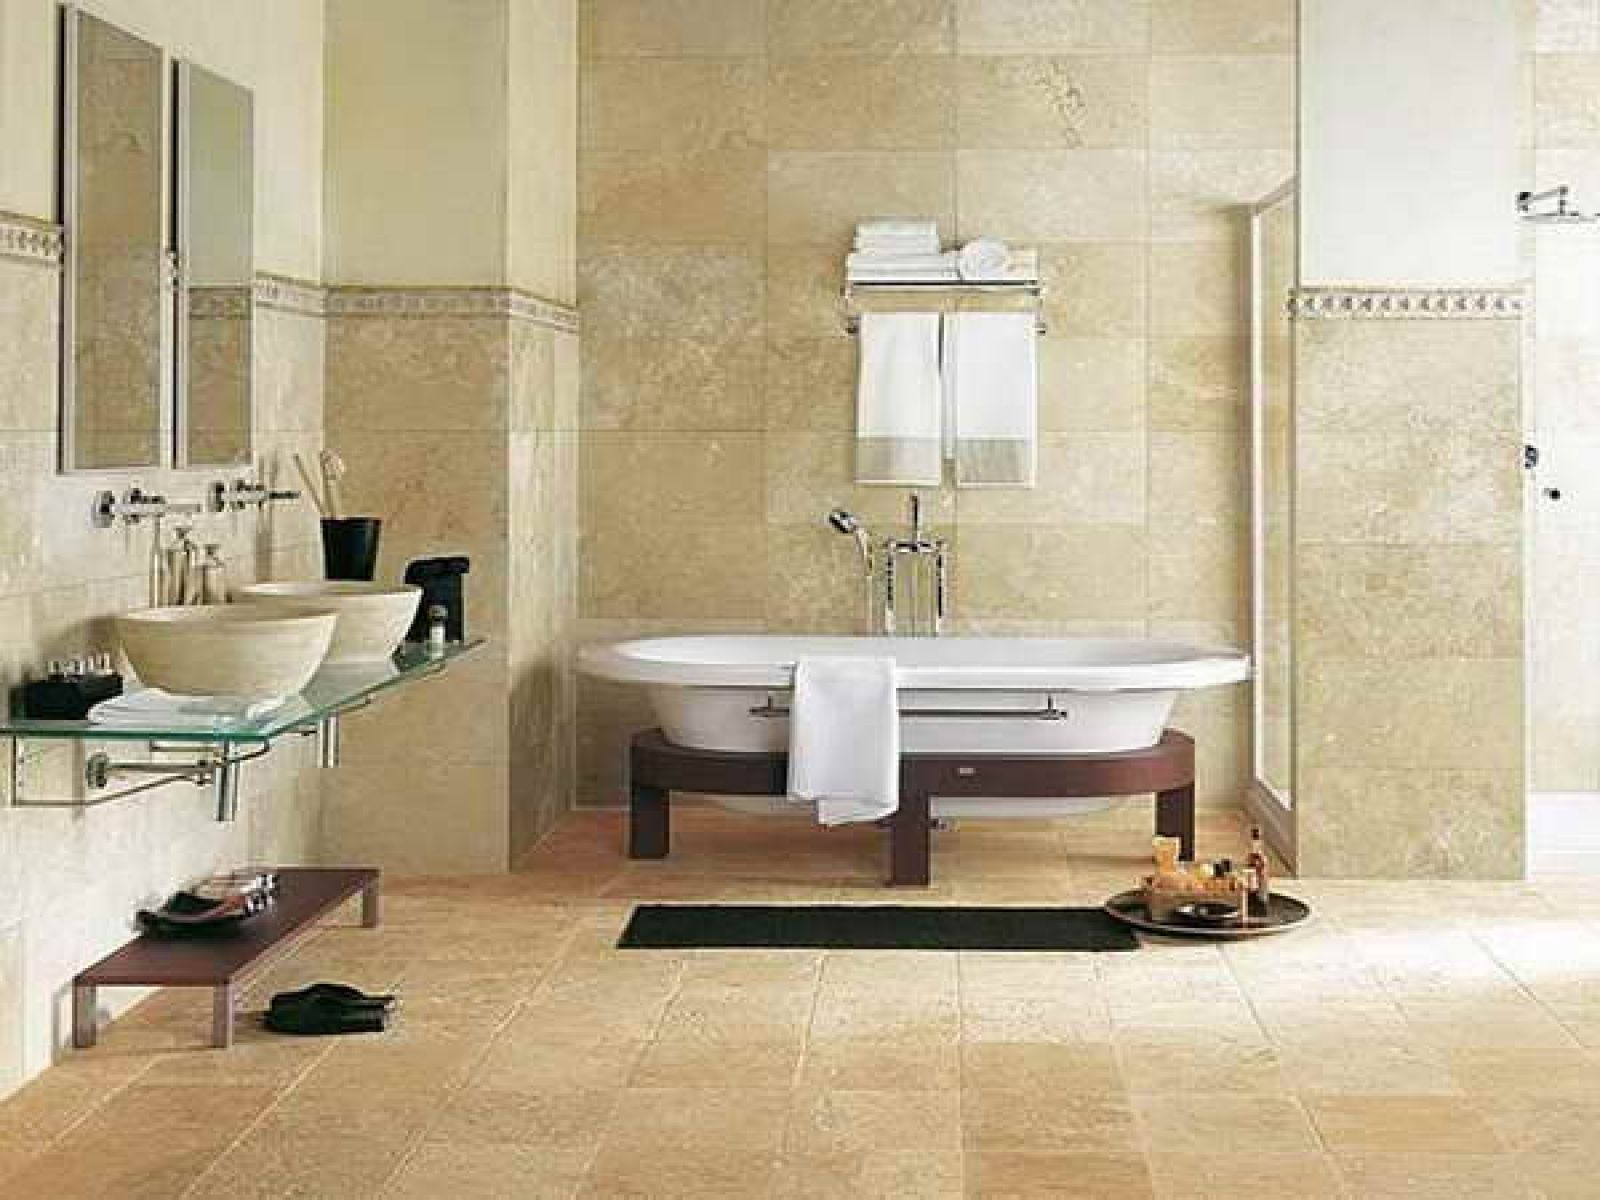 making wall carpeted bathroom mod ideas the work in it carpet home a to modernize tile